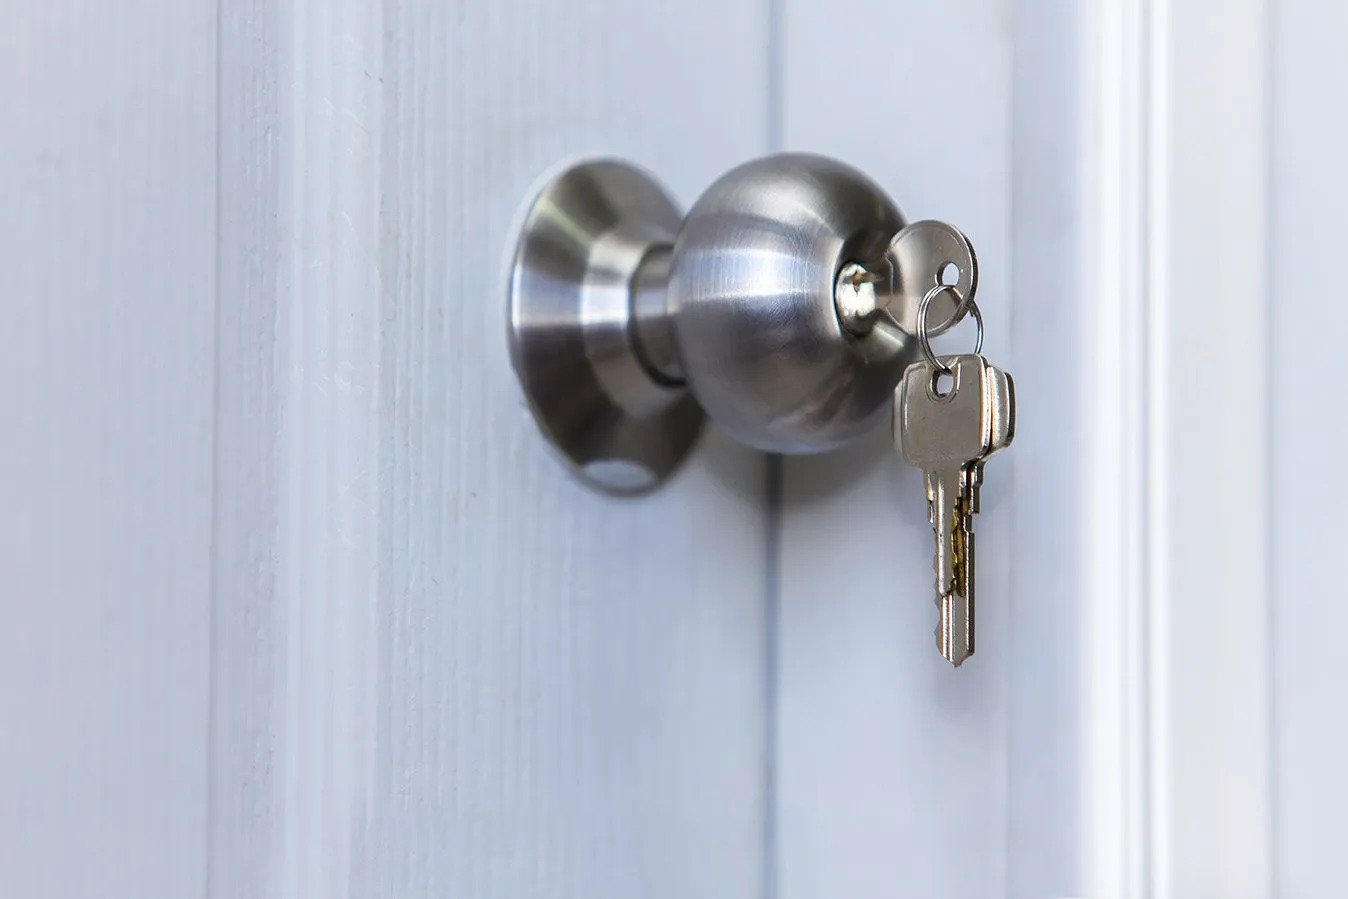 Doorknob with key inserted